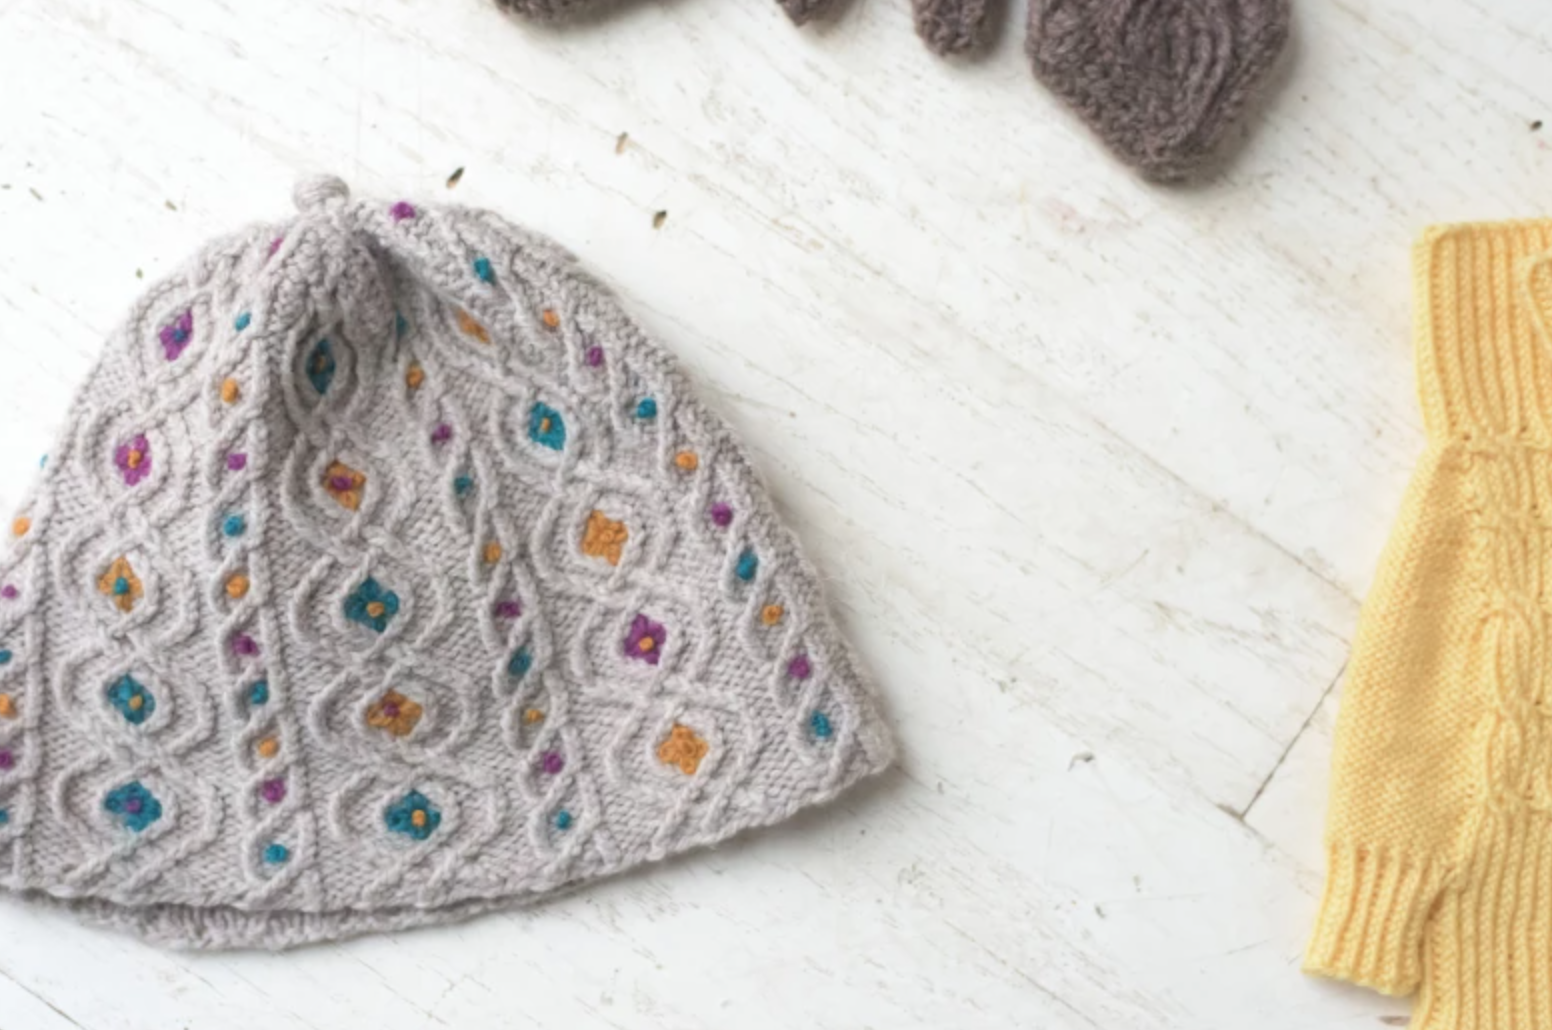 Bavarian Twisted Stitches knit hat